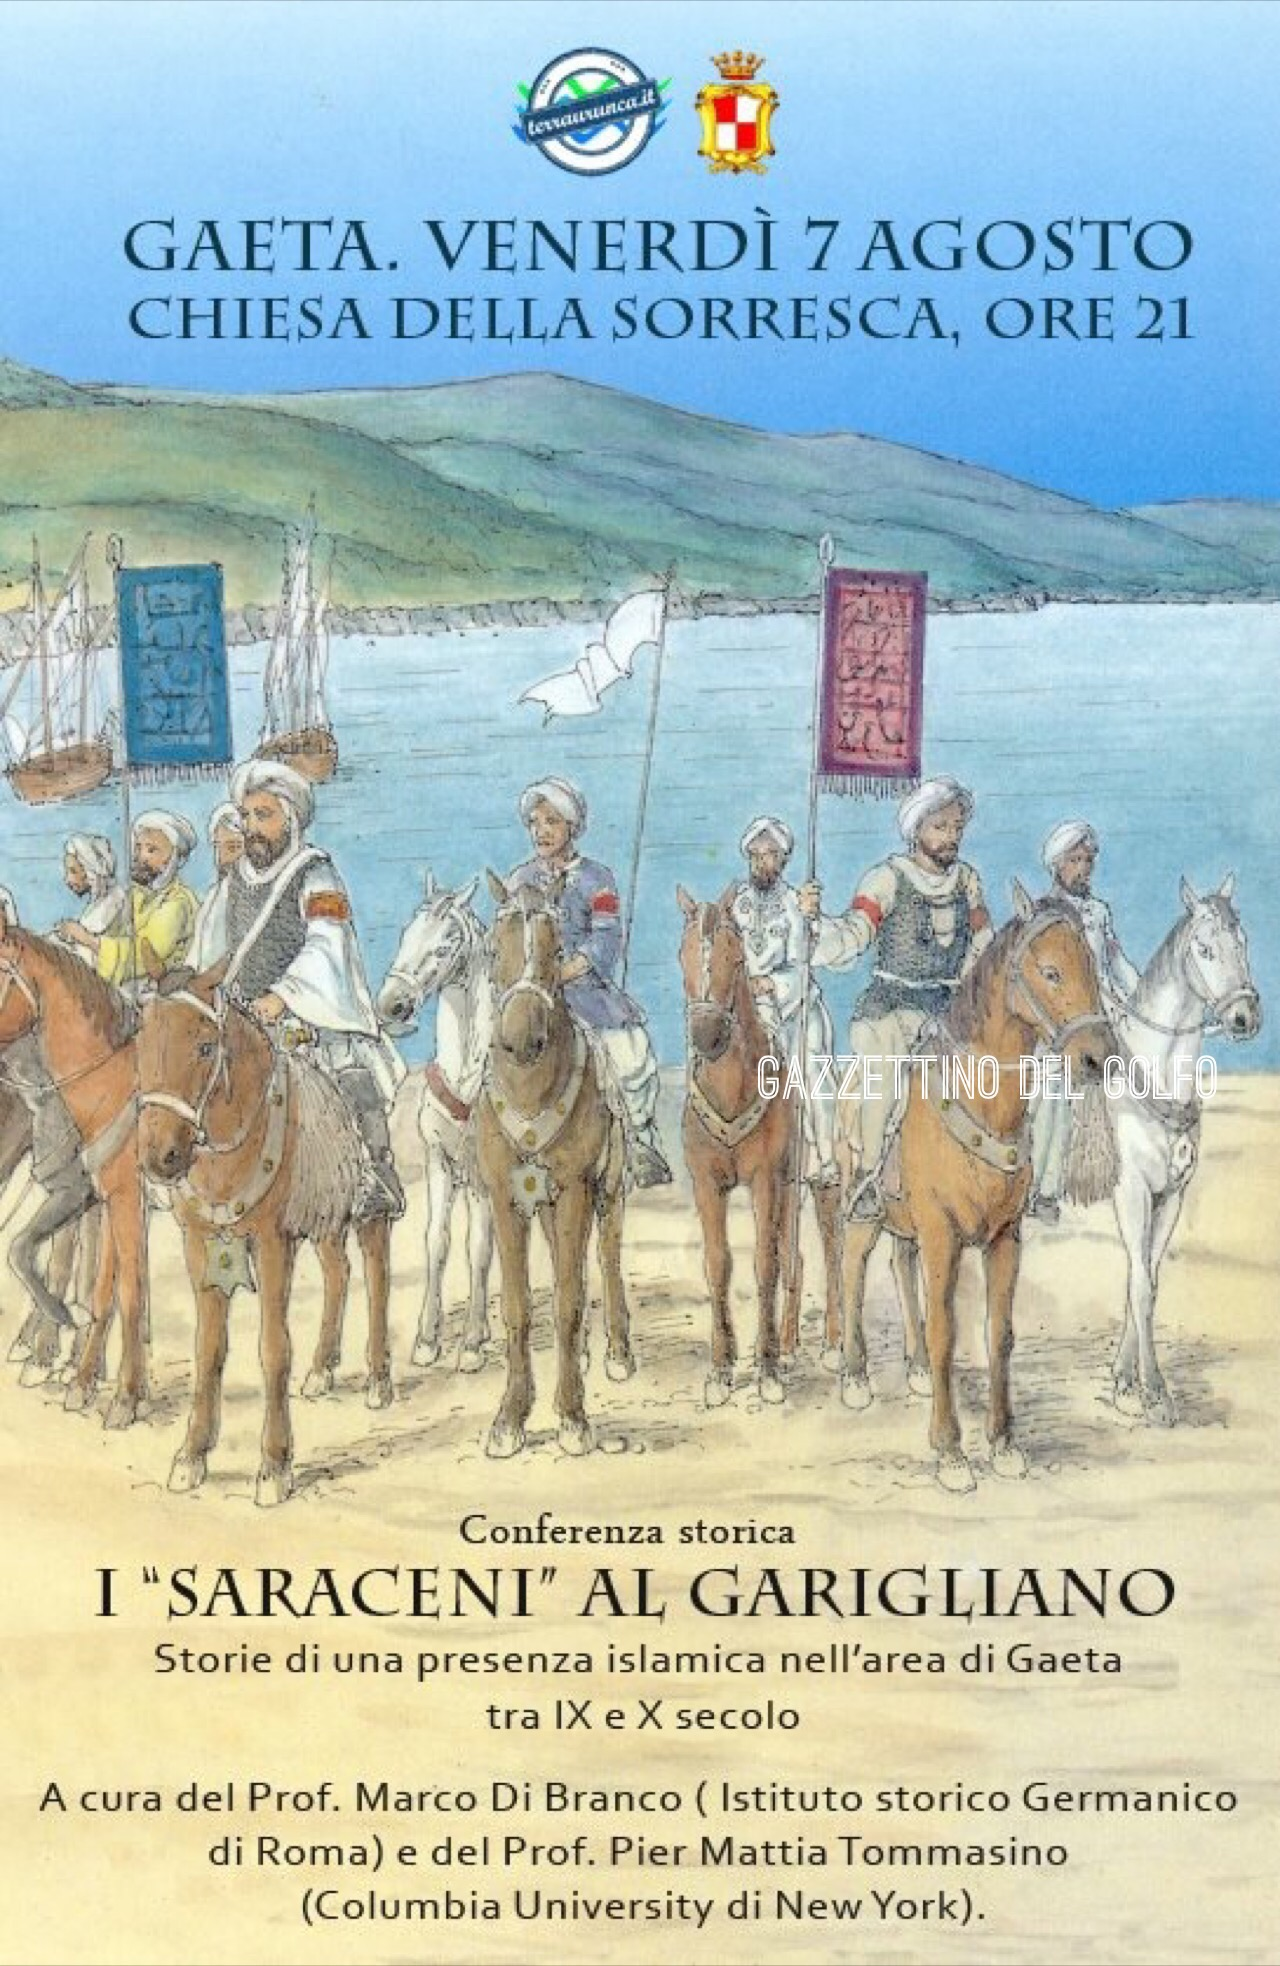 gaeta muslim The first consul of gaeta, constantine, who associated his son marinus with him, was a byzantine agent and a vassal of andrew ii of naples constantine defended the city from the ravages of muslim pirates and fortified it, building outlying castles as well.